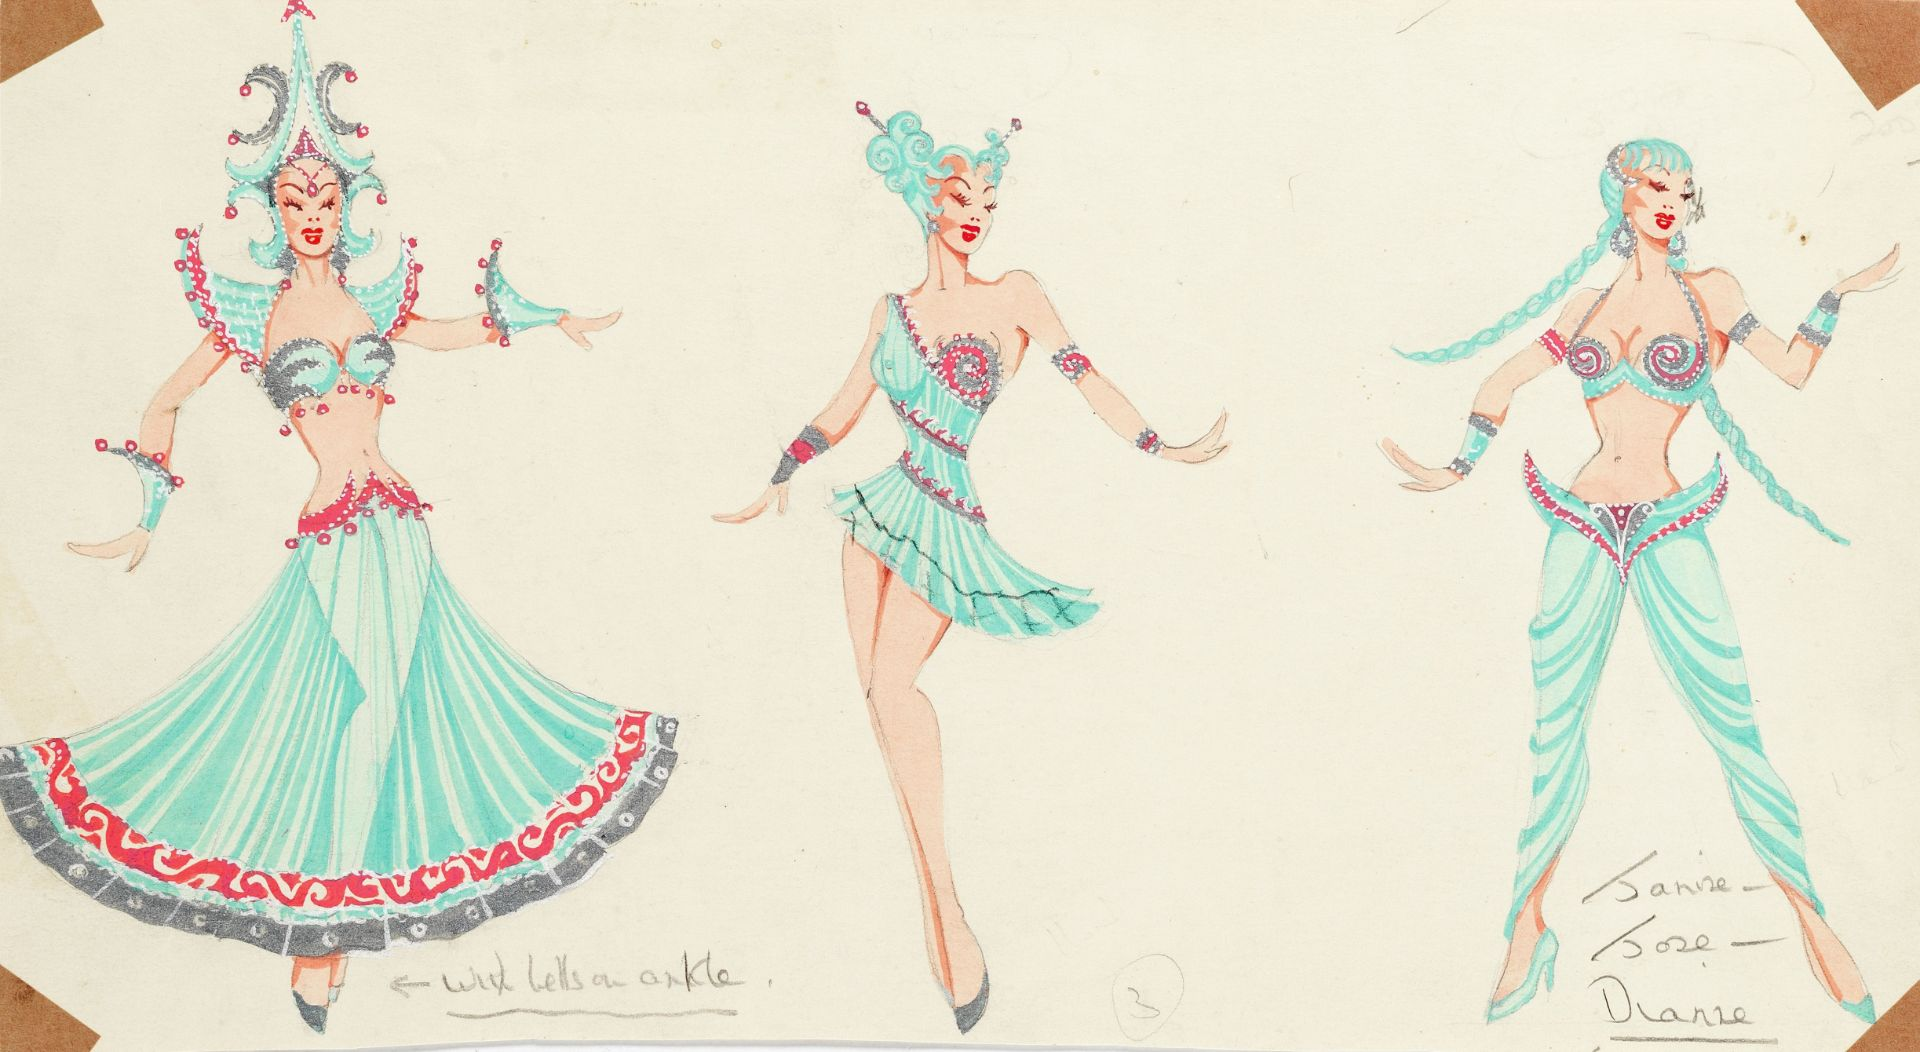 MICHAEL BRONZE (BRITISH, 1916-1979): A GROUP OF DRAWINGS OF COSTUME DESIGNS FOR MURRAY'S CABARET ...